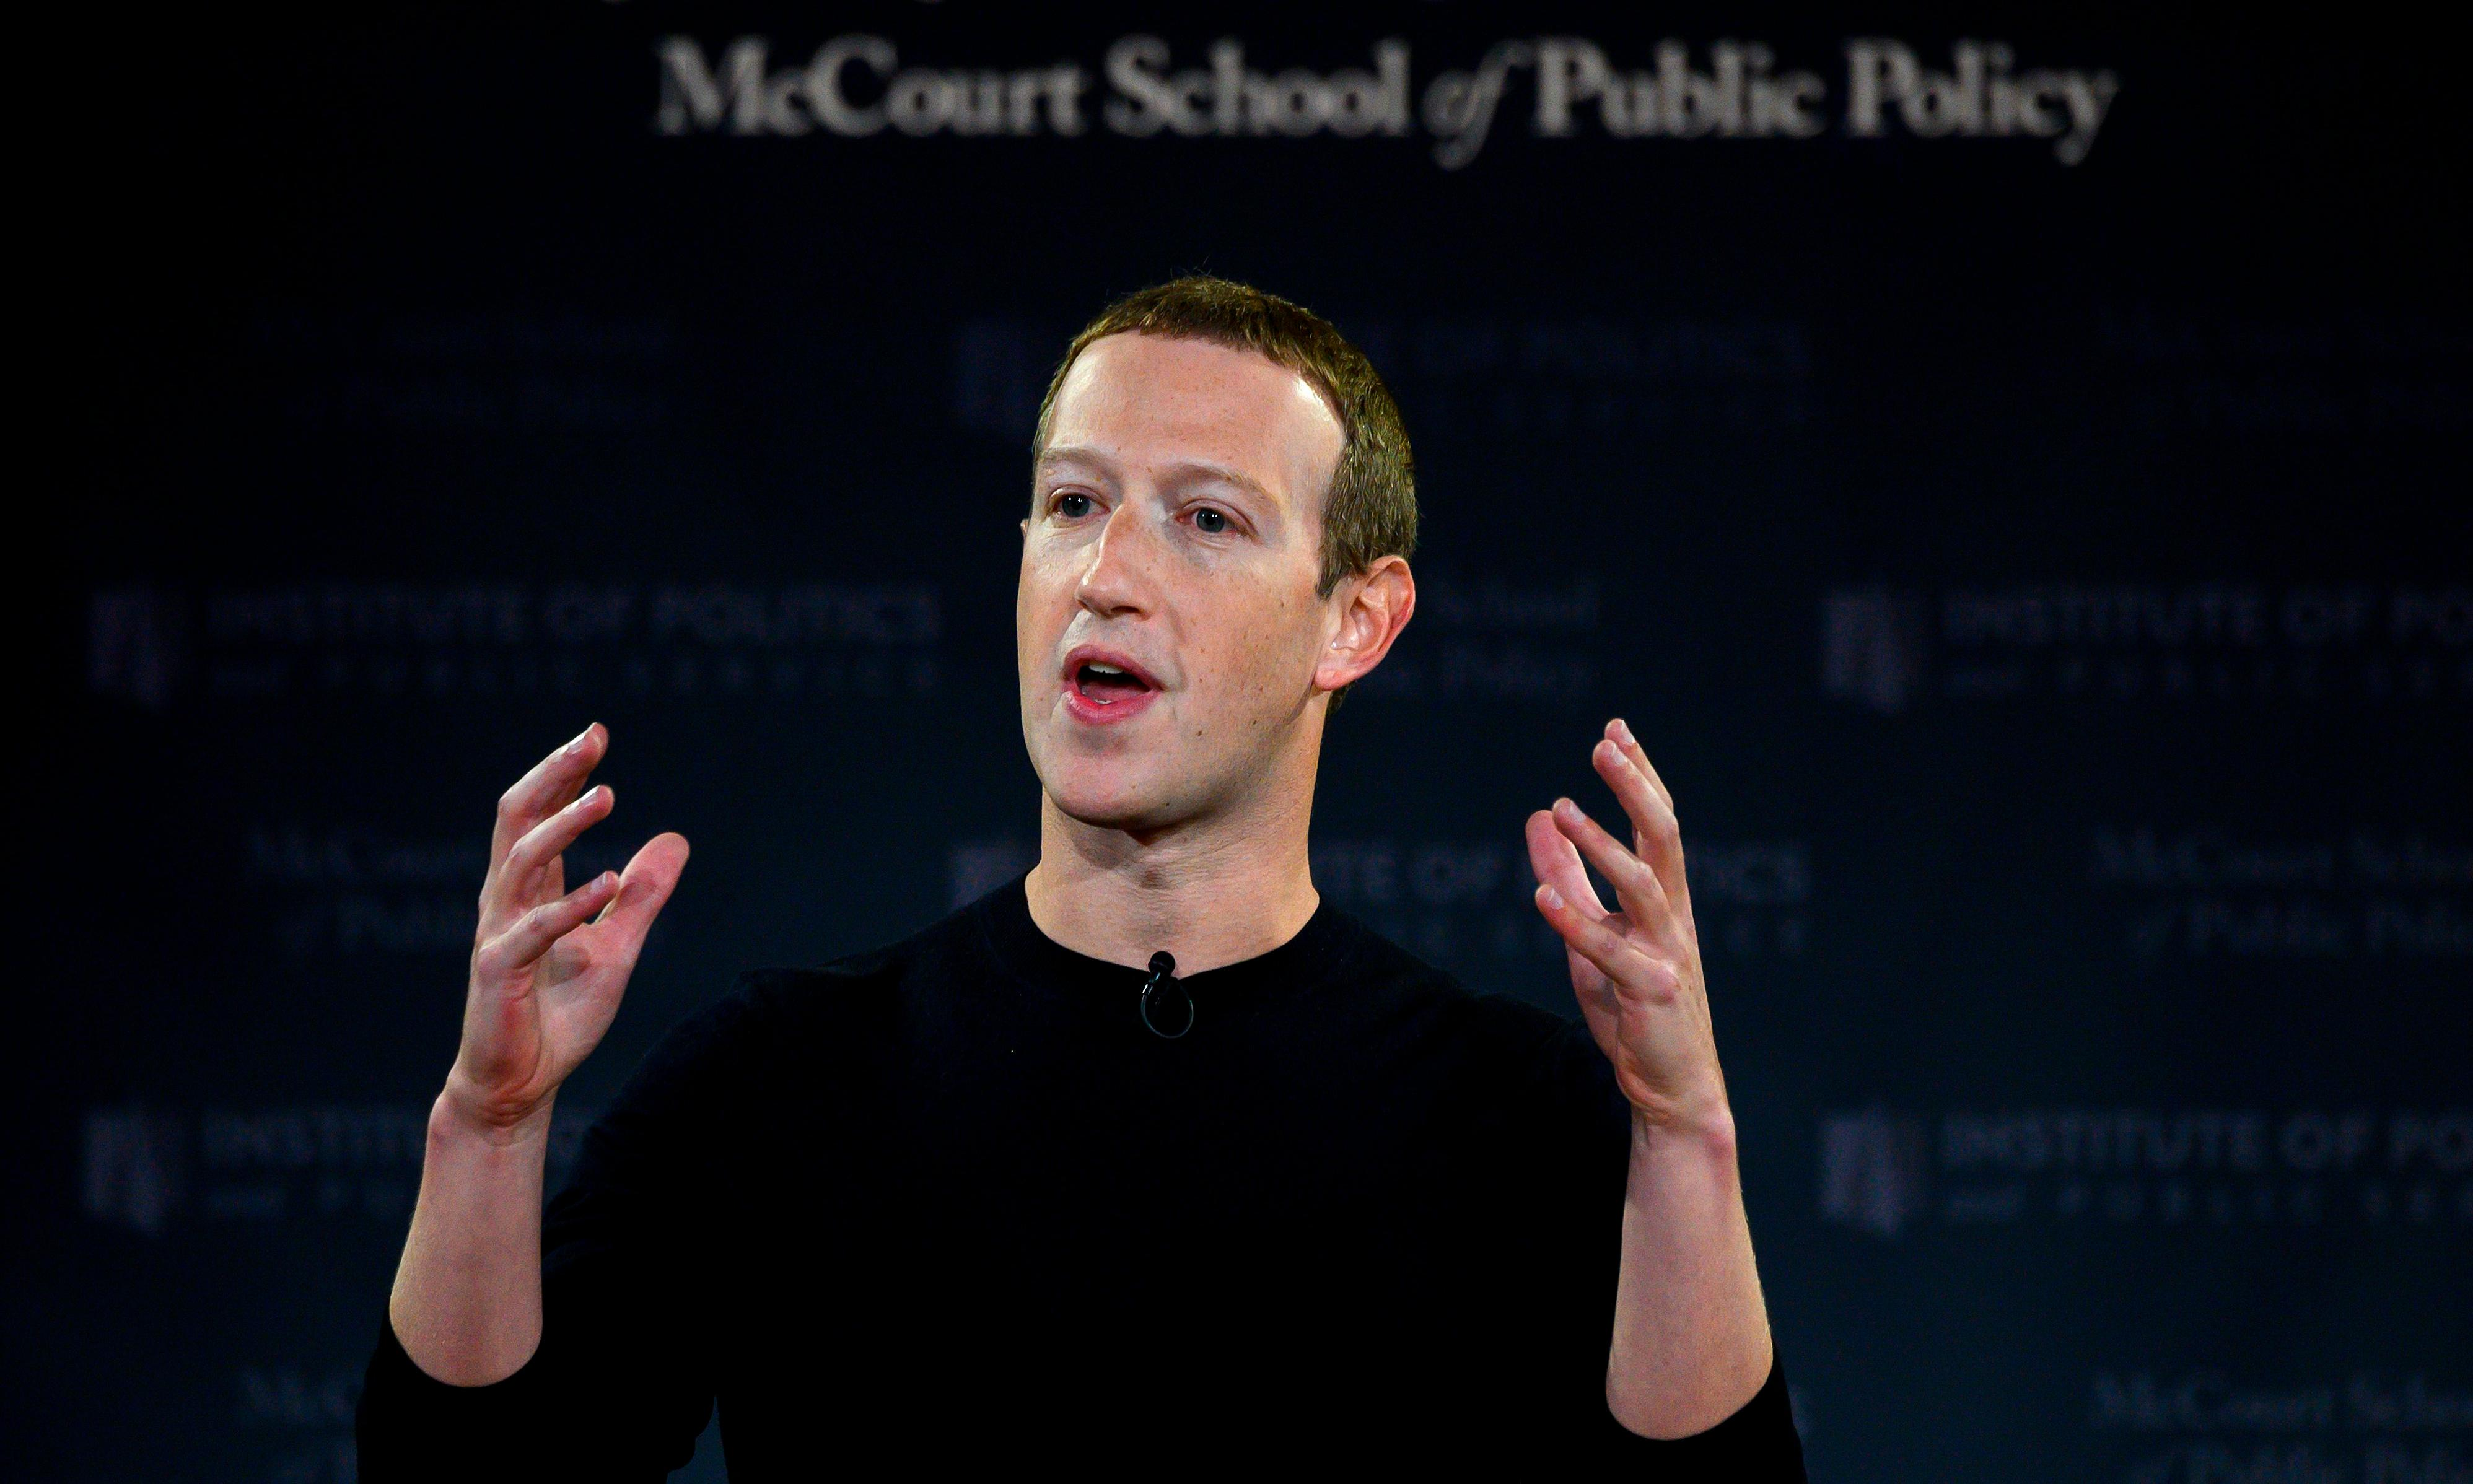 Zuckerberg defends Facebook as bastion of 'free expression' in speech